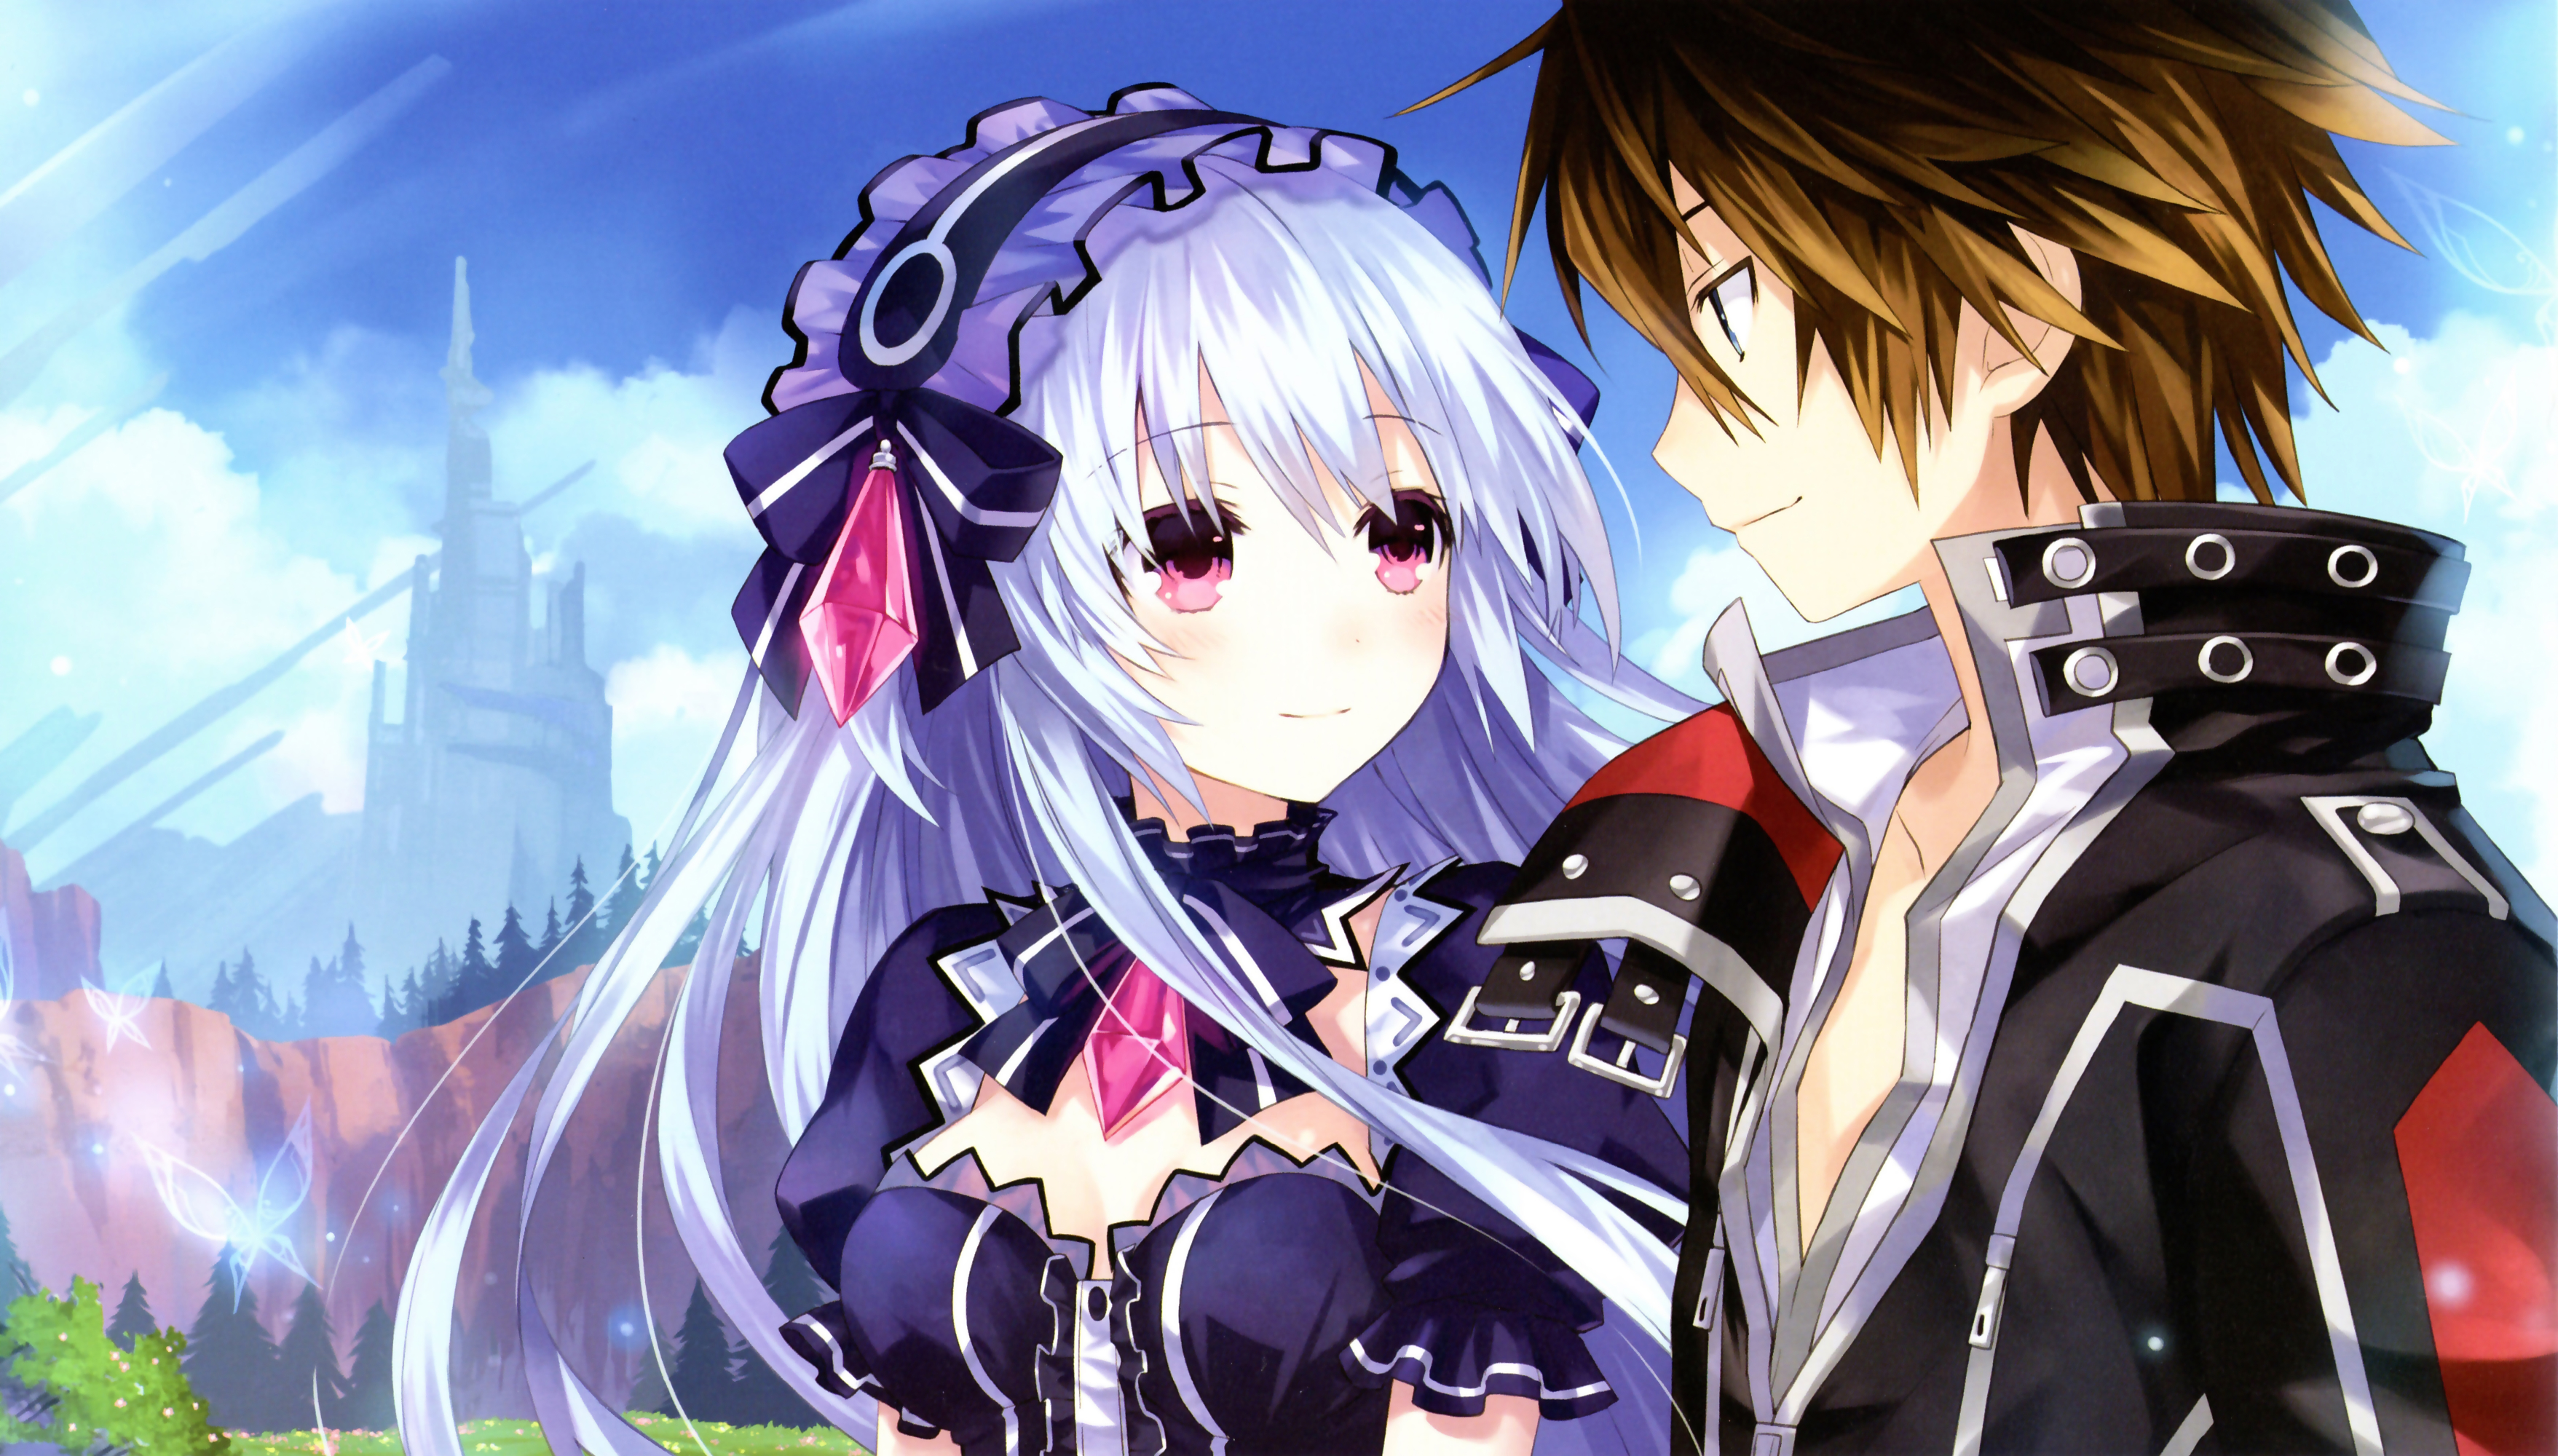 Tiara S Ending Goddess Route Hd Wallpaper Background Image 3513x2000 Id 785936 Wallpaper Abyss